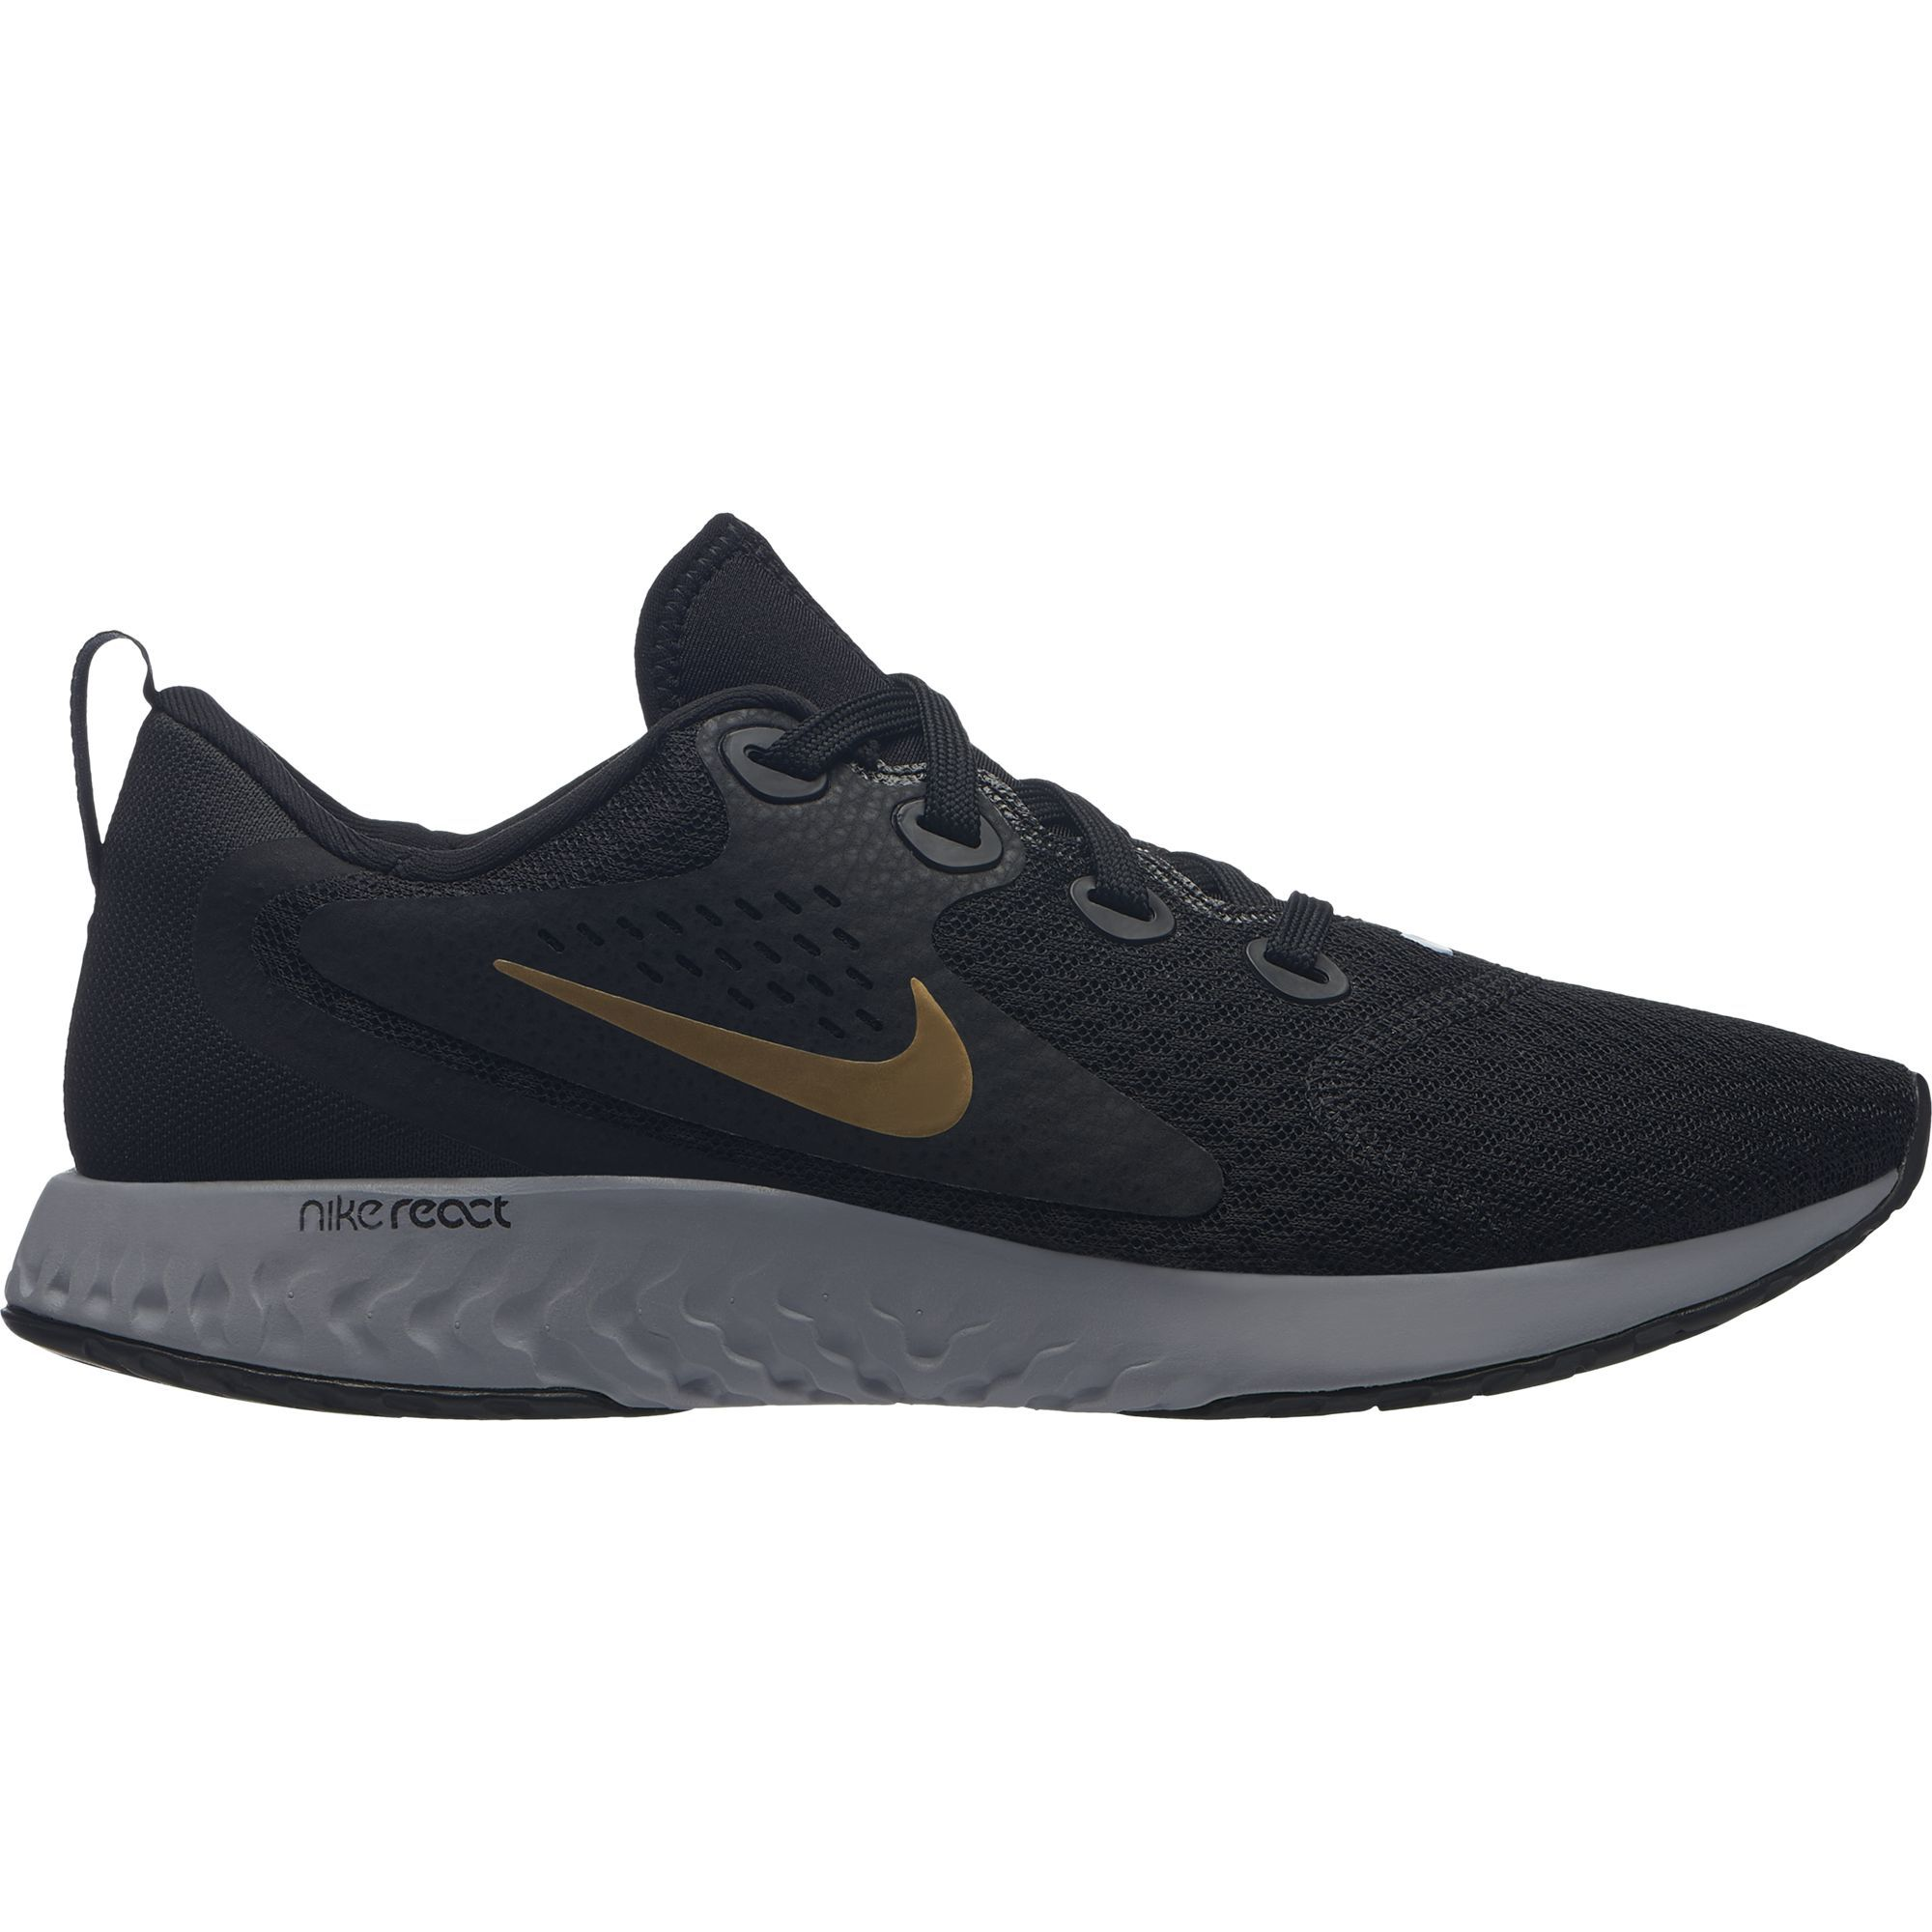 Nike Lady Legend React in Schwarz Gold Grau